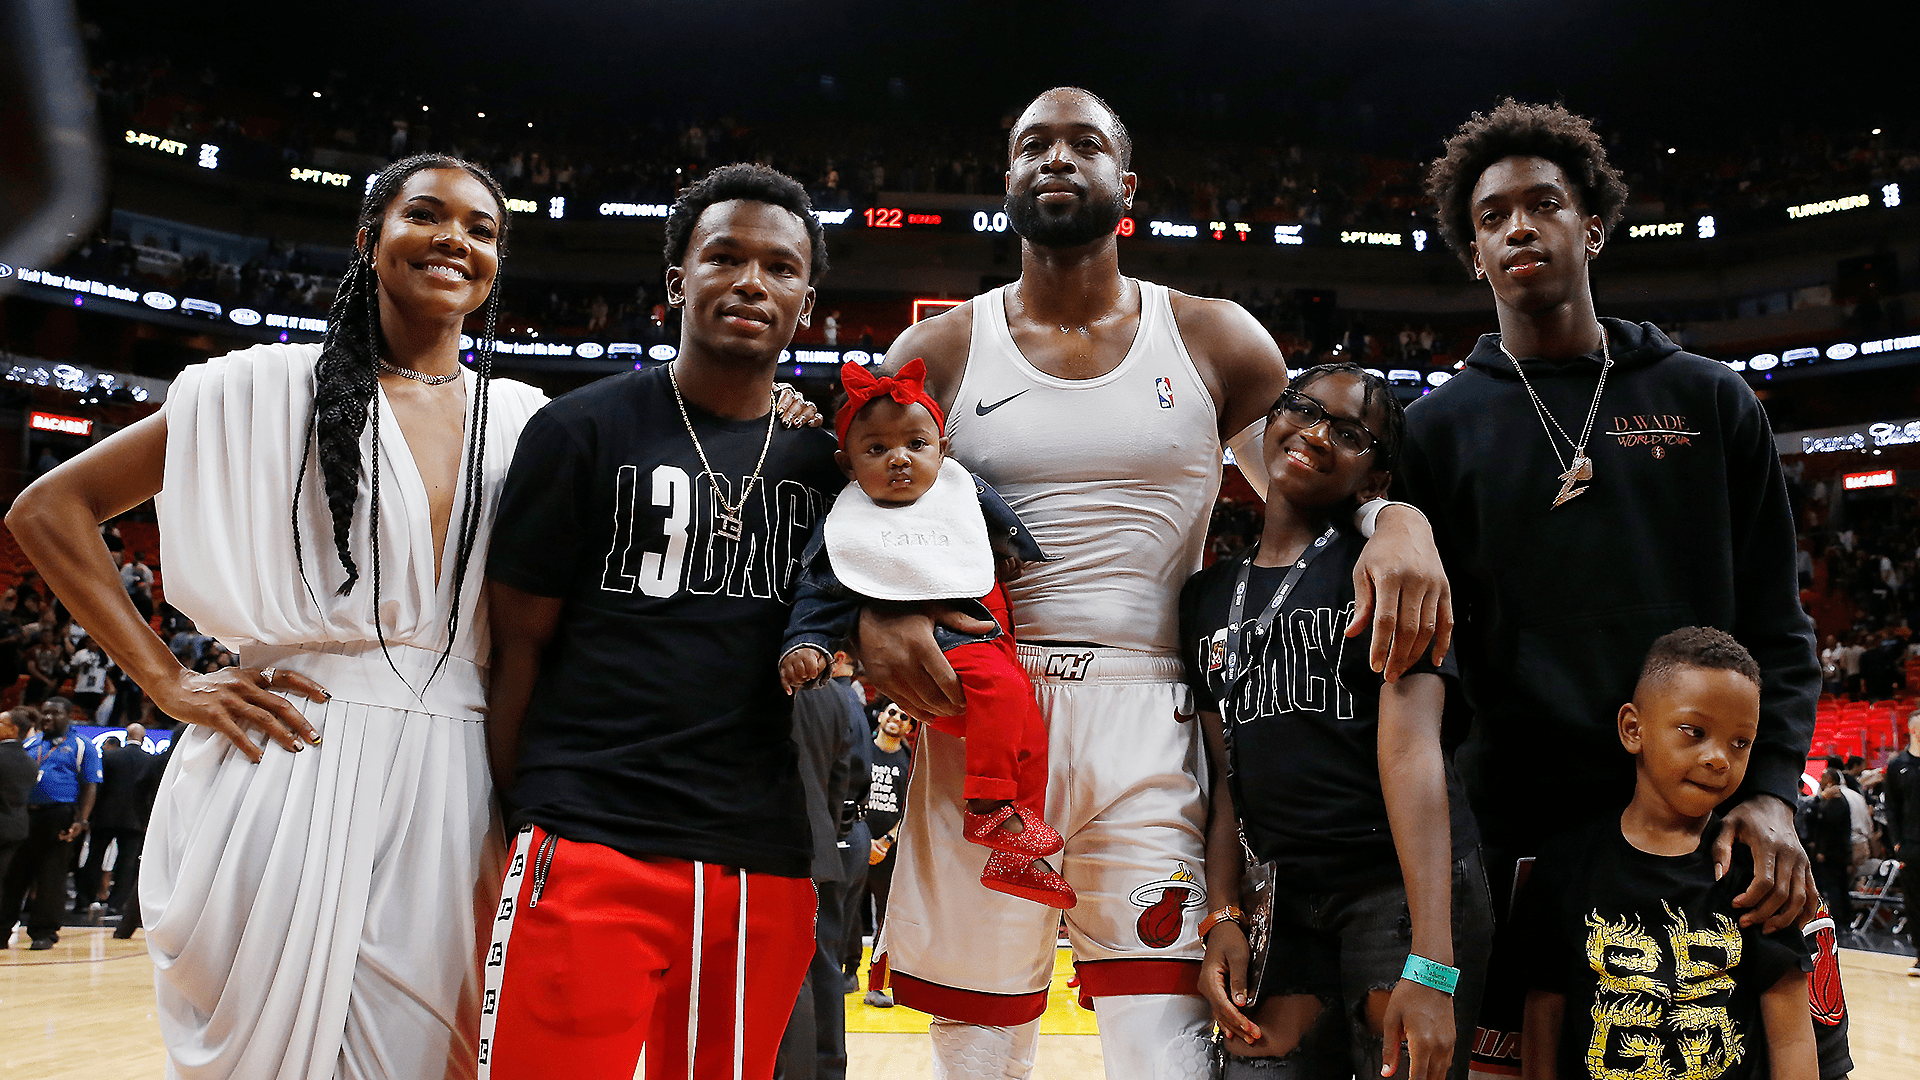 Dwyane Wade says his 12-year-old child Zaya is a 'chief' for identifying as female